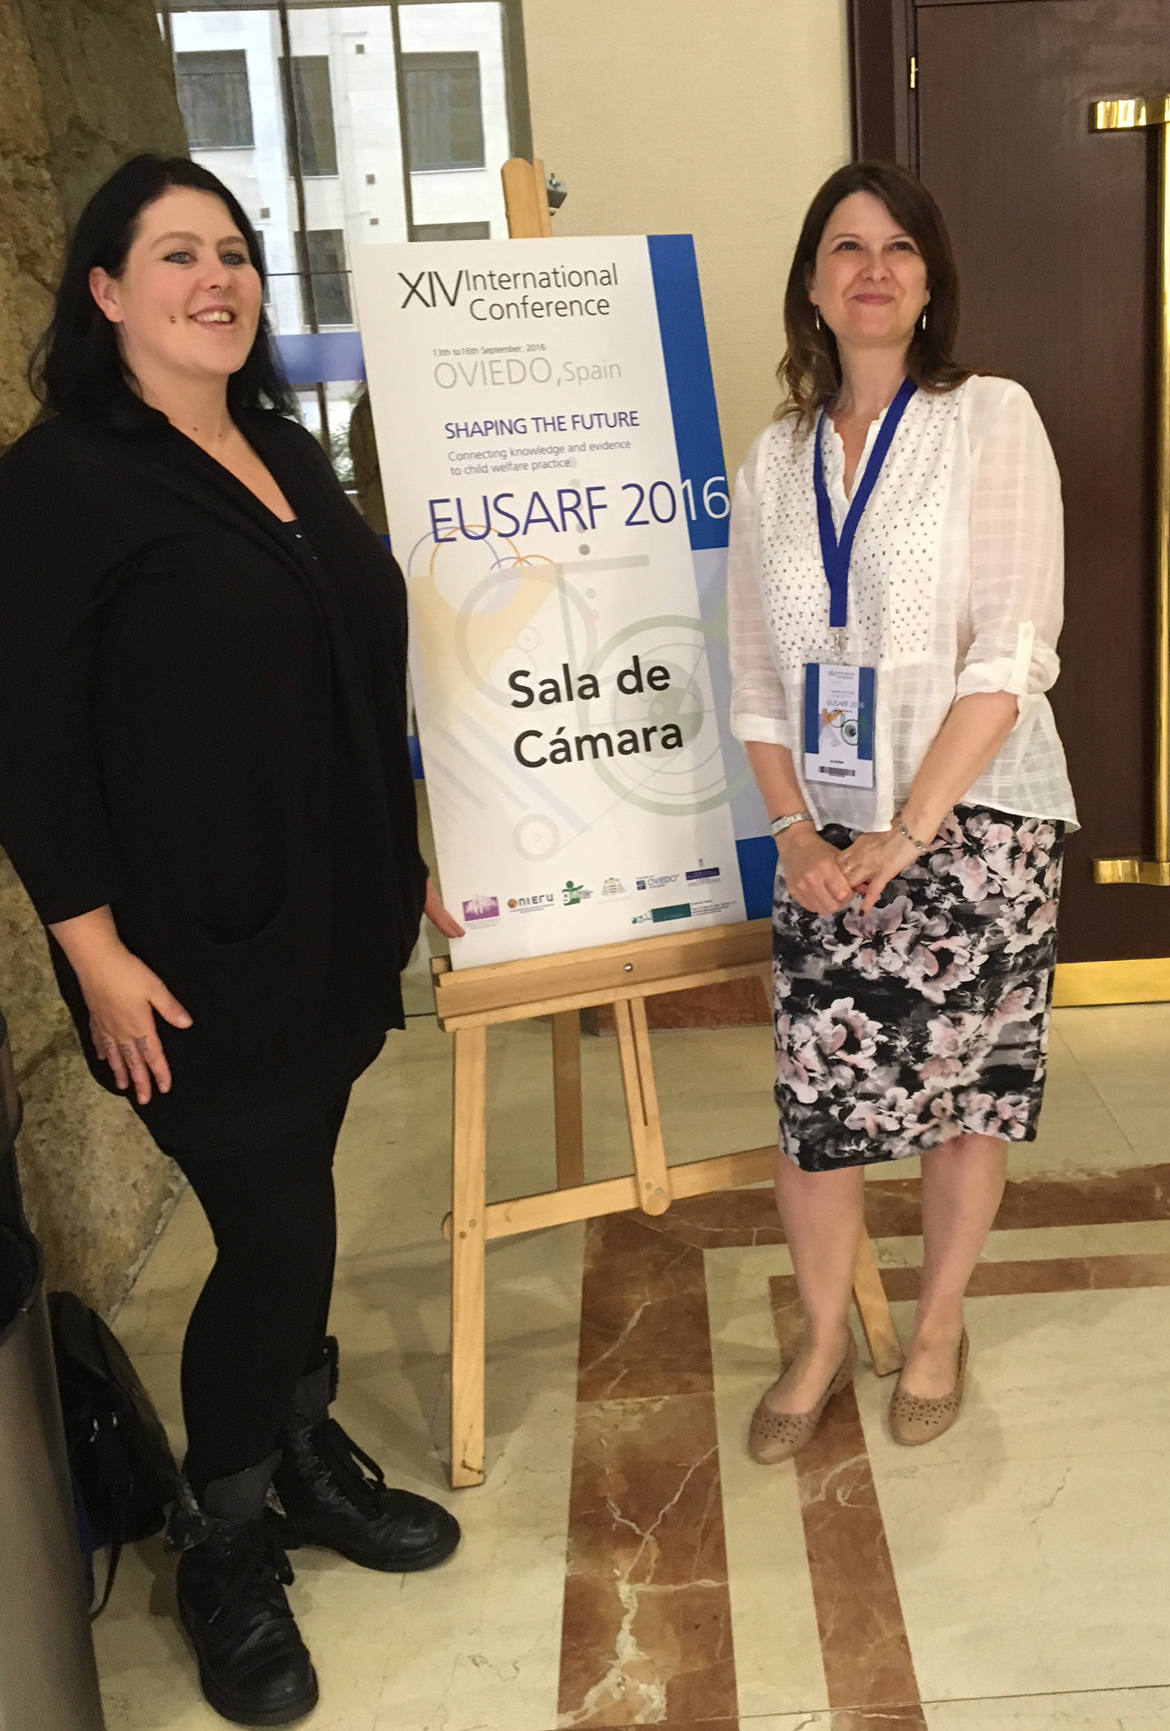 Jo Dixon and Jade ward with poster at EUSARF conference